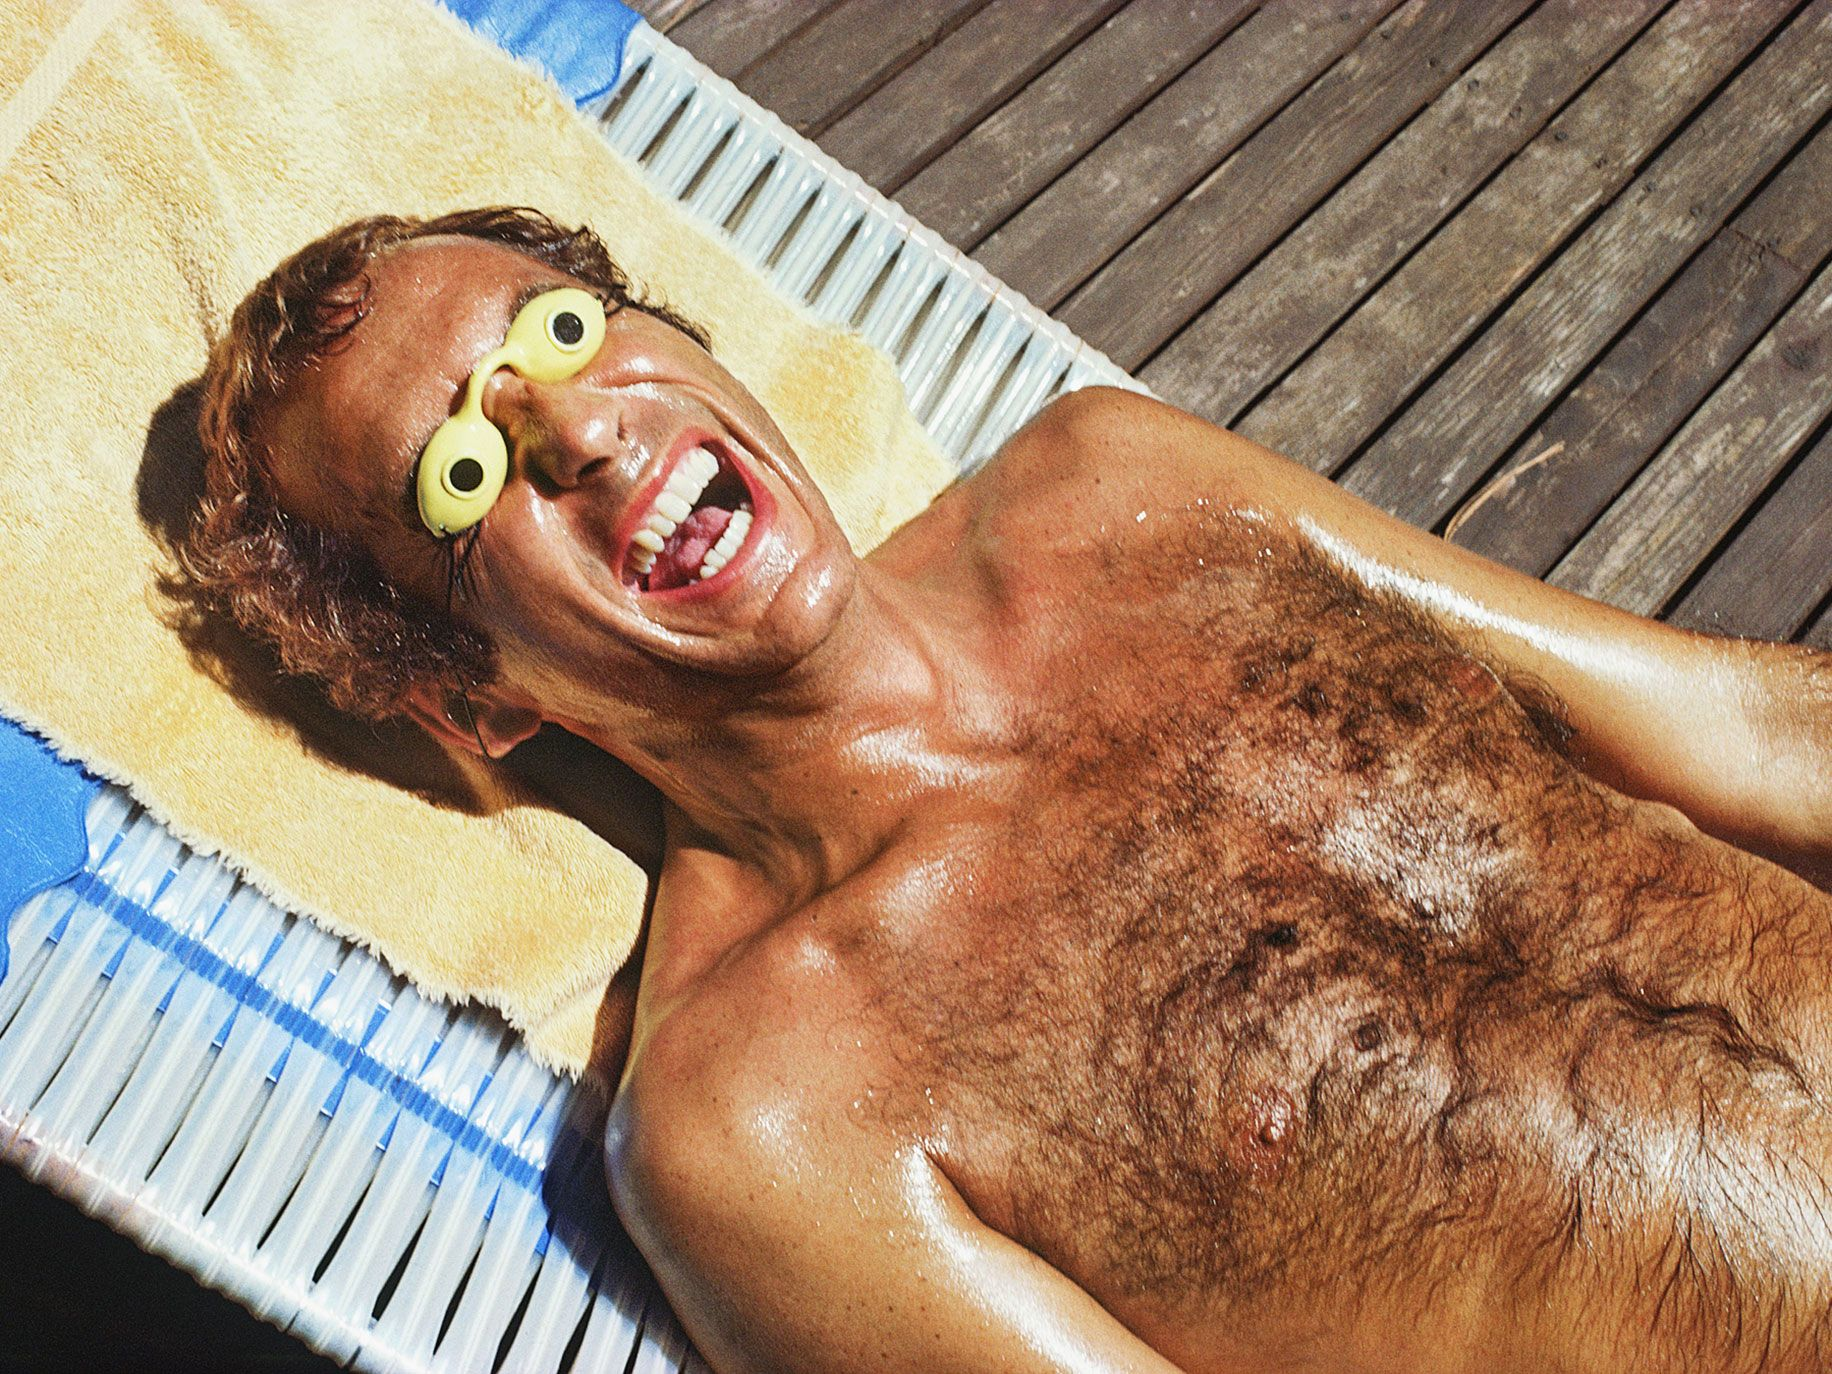 Richie Silverman, extreme tanner, West Hollywood, California, January 1979. The photograph is from Roger Steffens's The Family Acid: California, which looks back at the Golden State from 1968 to 2015.